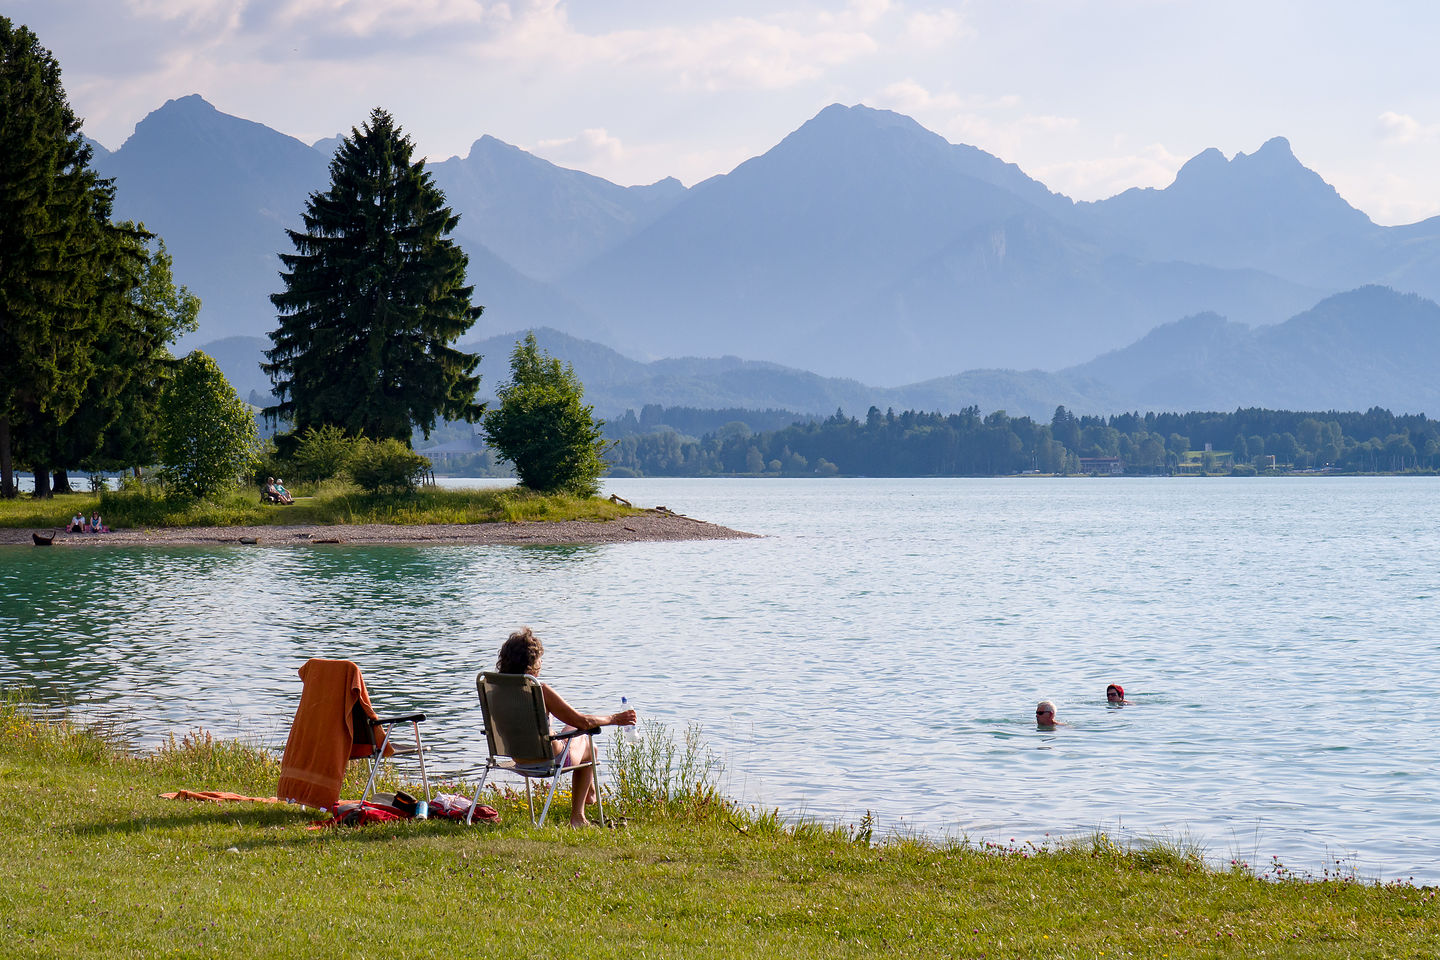 Our campground beach on the Forgensee